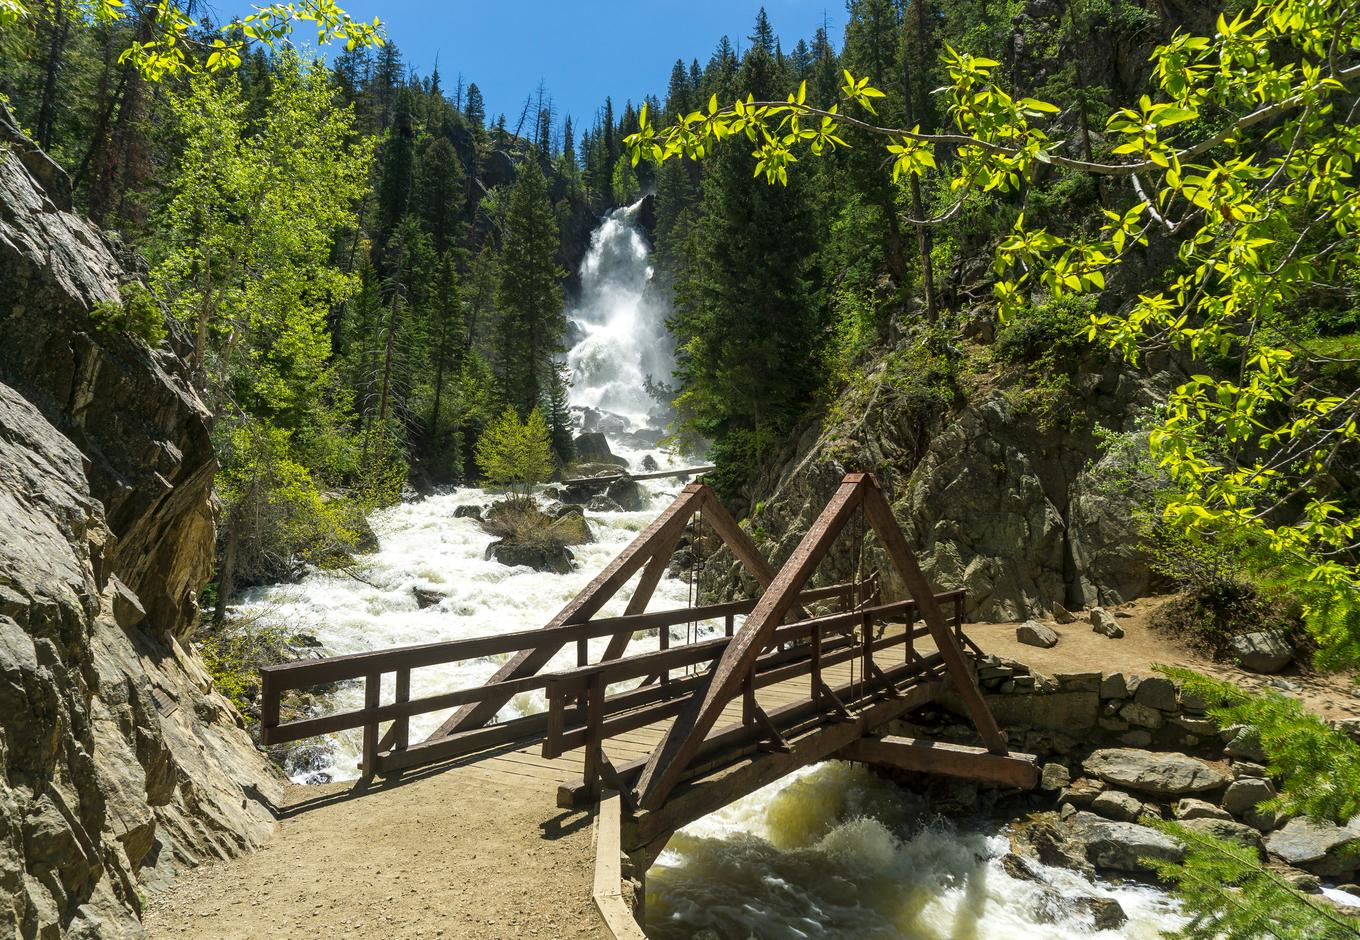 A small bridge over the river at Fish Creek Falls, Colorado.